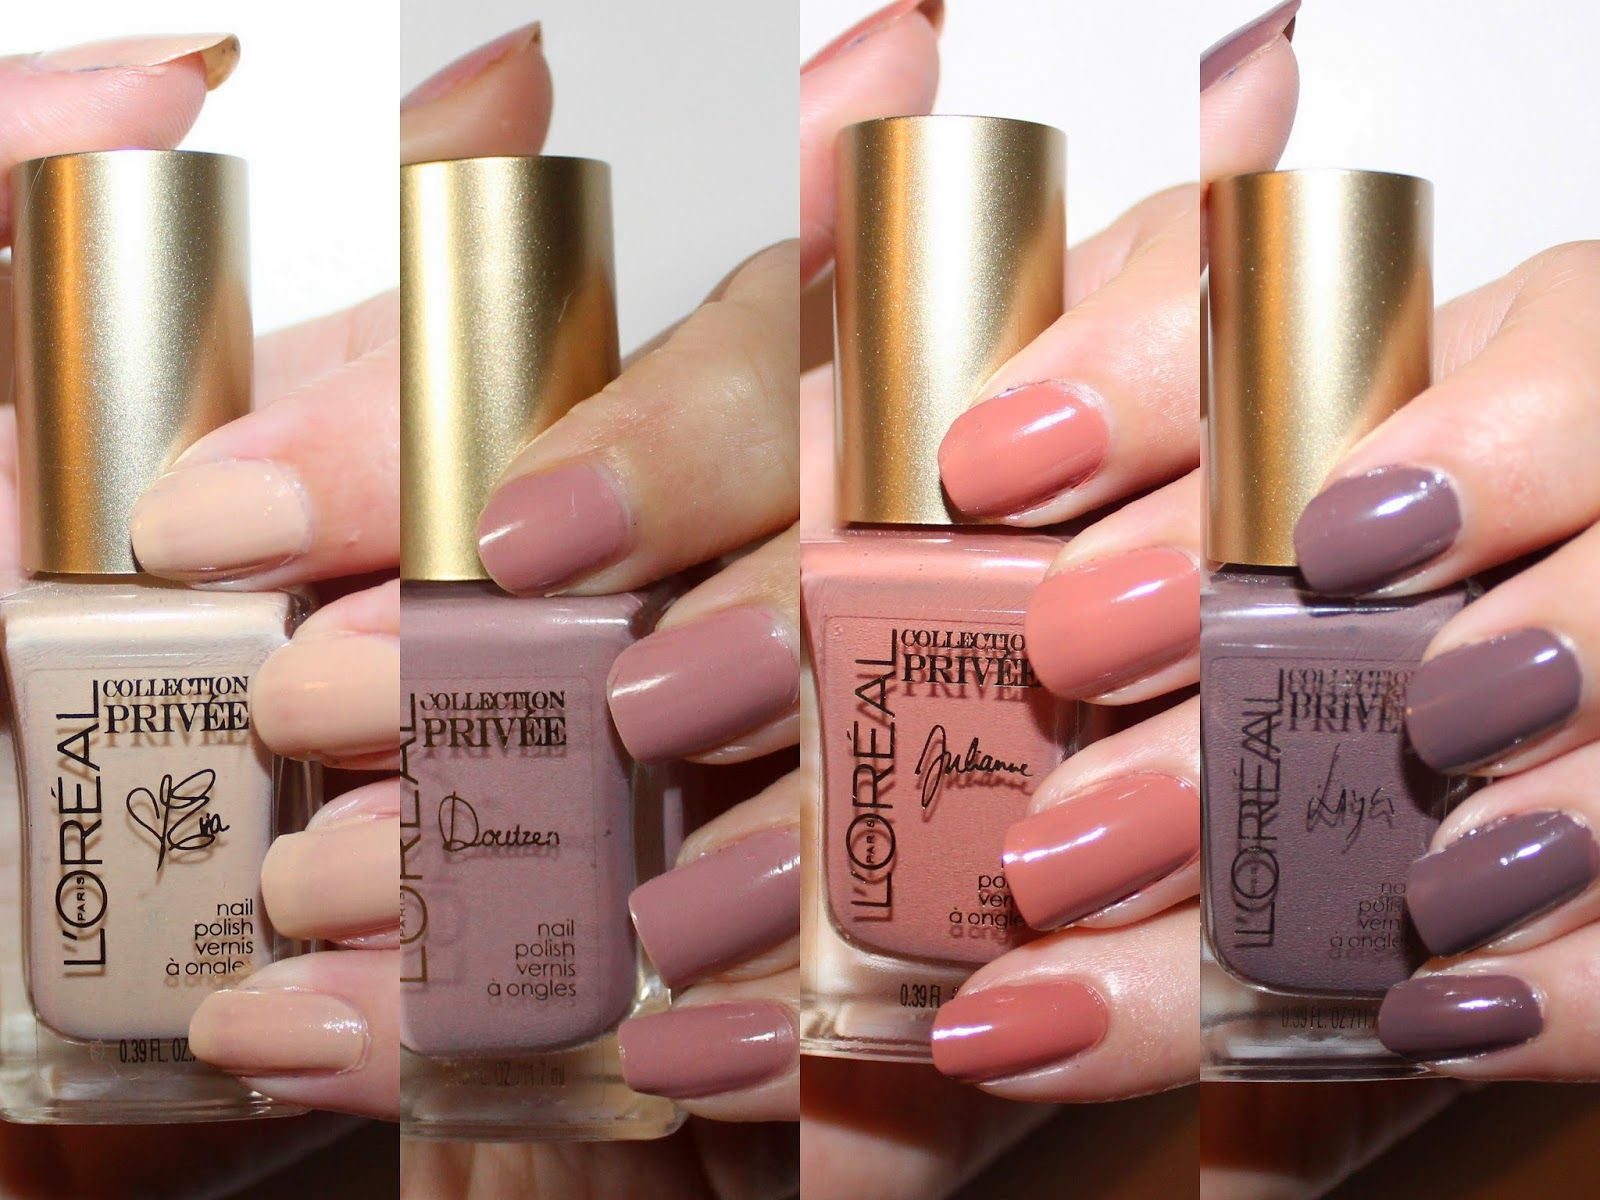 L'Oréal Collection Privée Exclusive Nudes Nail Polishes Swatches ...